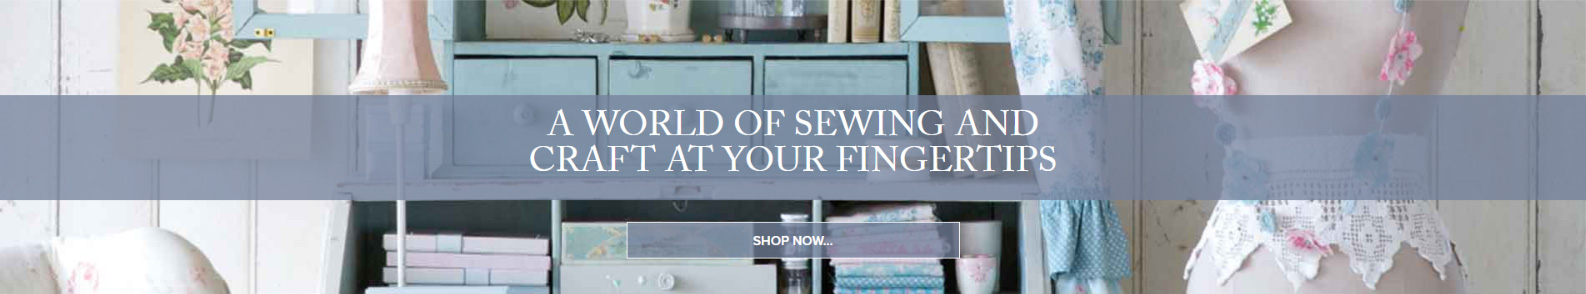 A World of Sewing and Craft at Your Fingertips